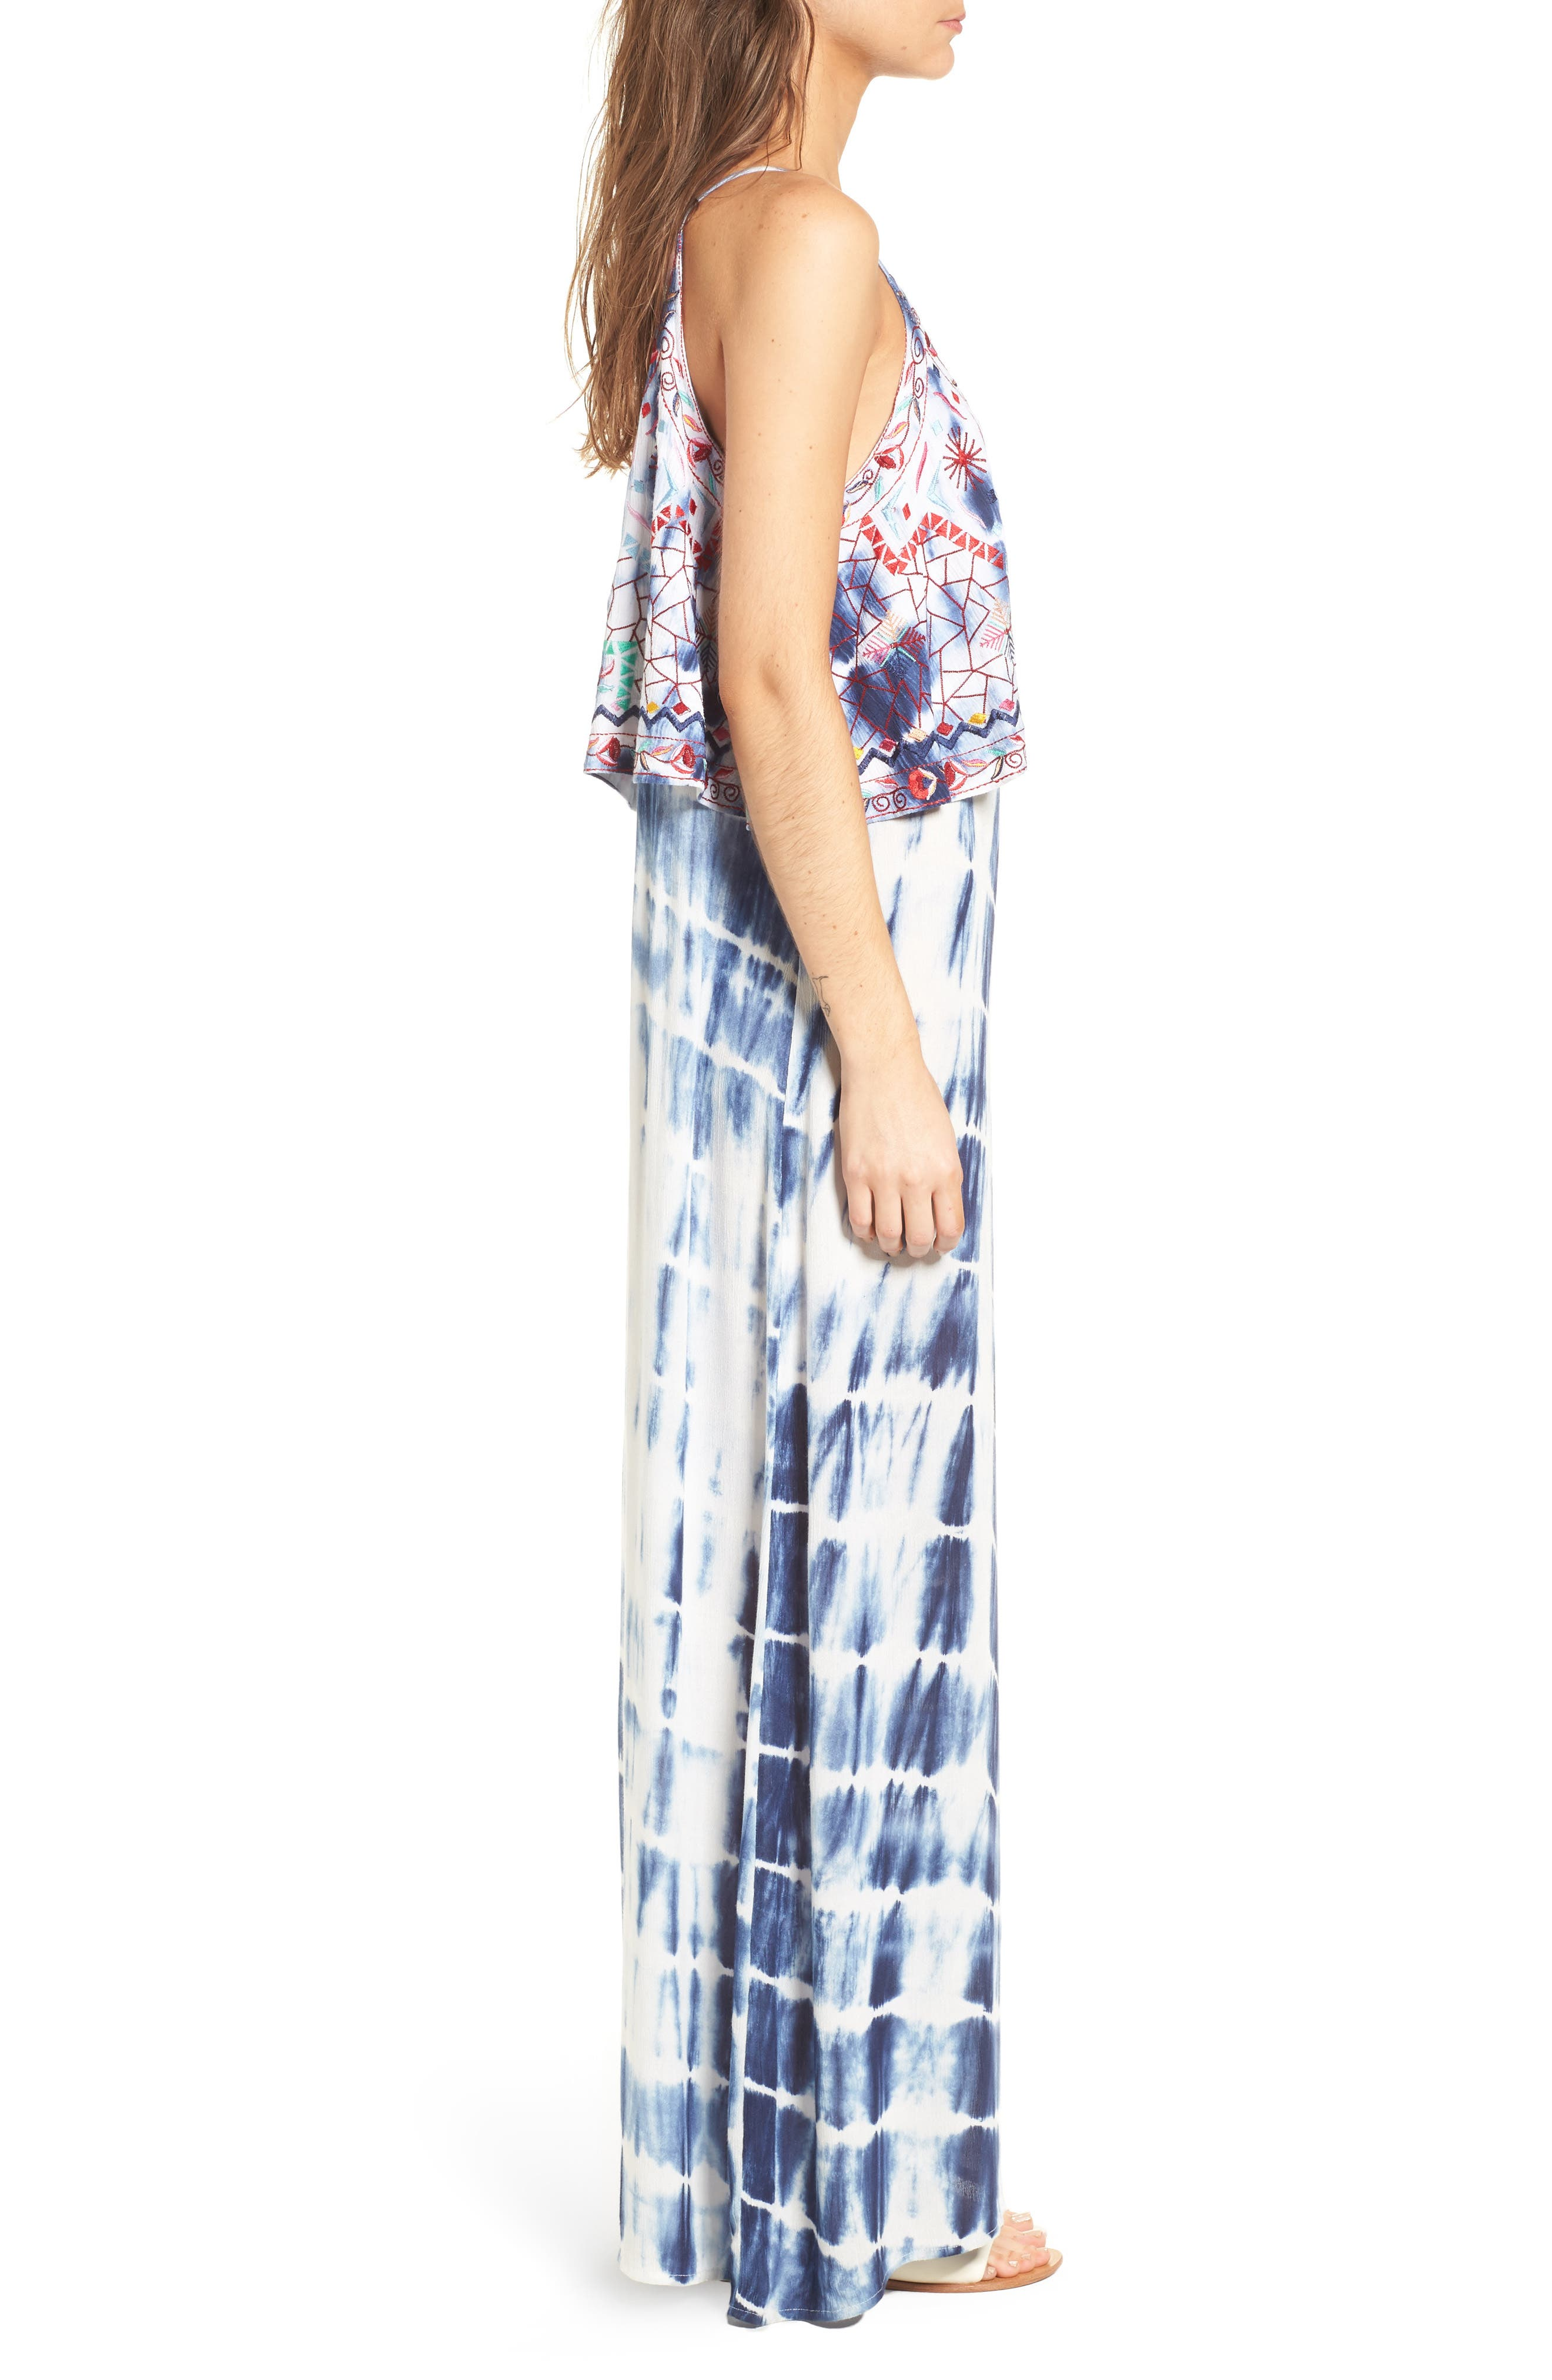 Catching The Waves Embroidered Maxi Dress,                             Alternate thumbnail 3, color,